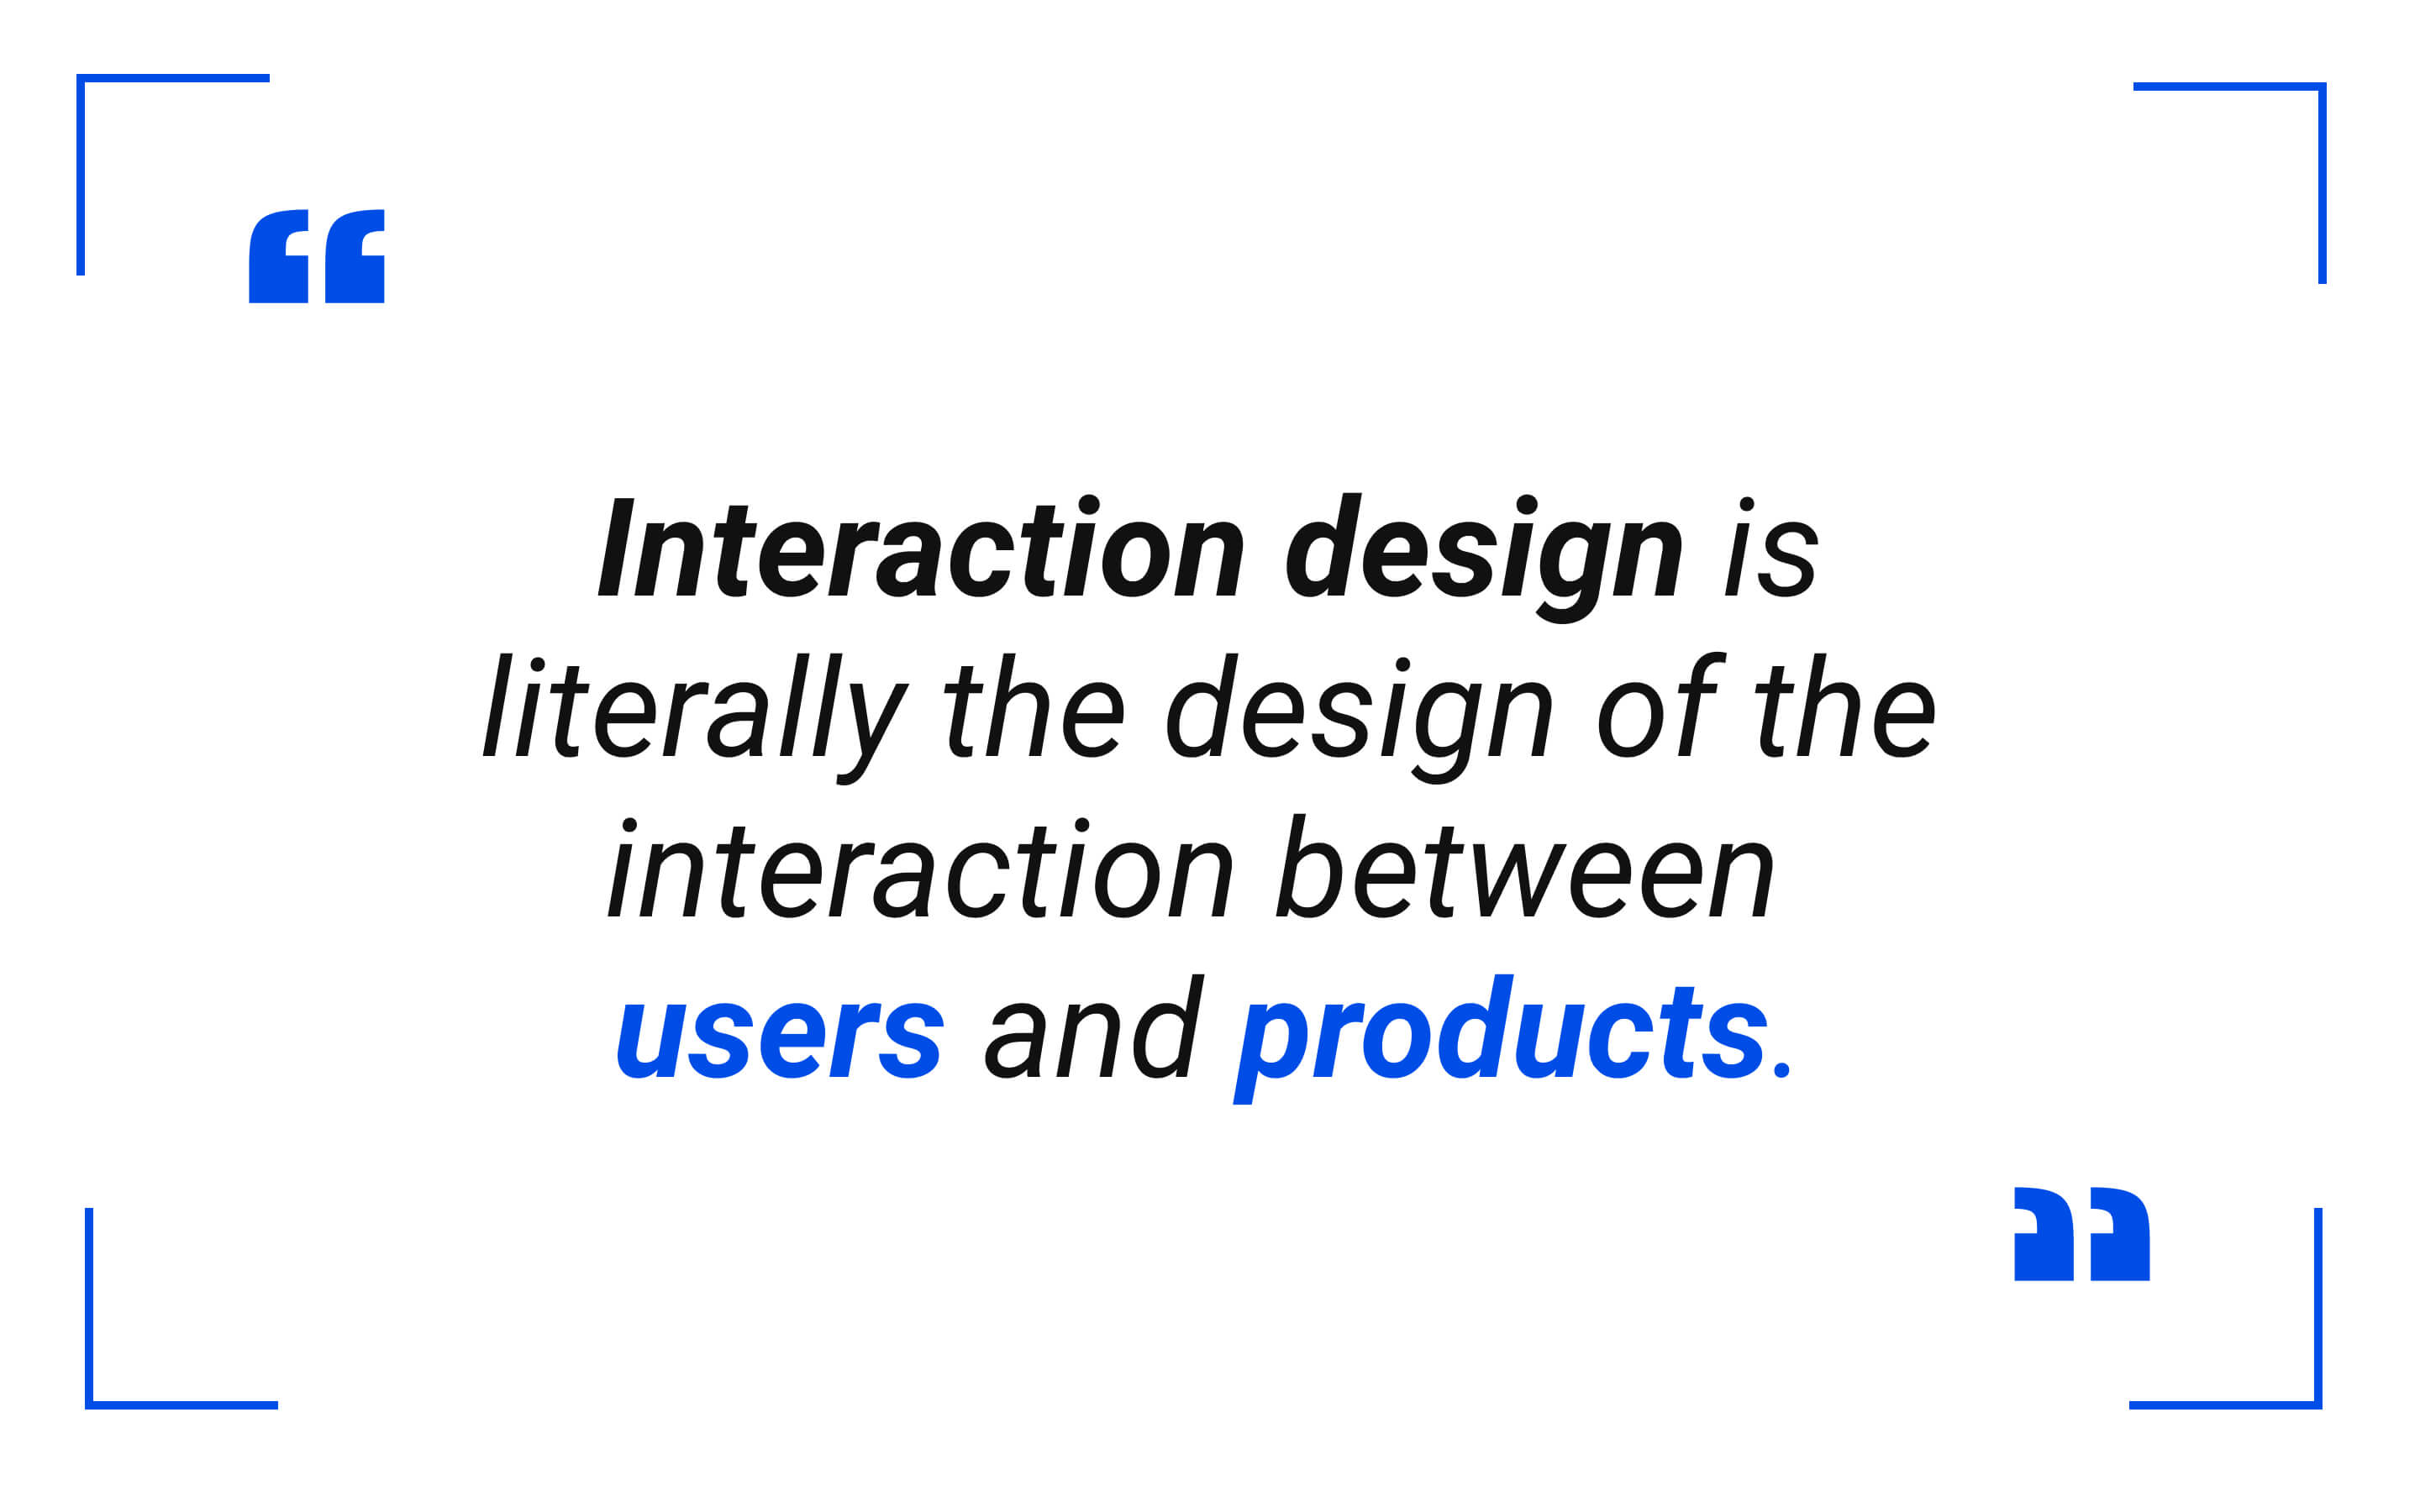 Interaction design is quite literally the design of the interaction between users and products.